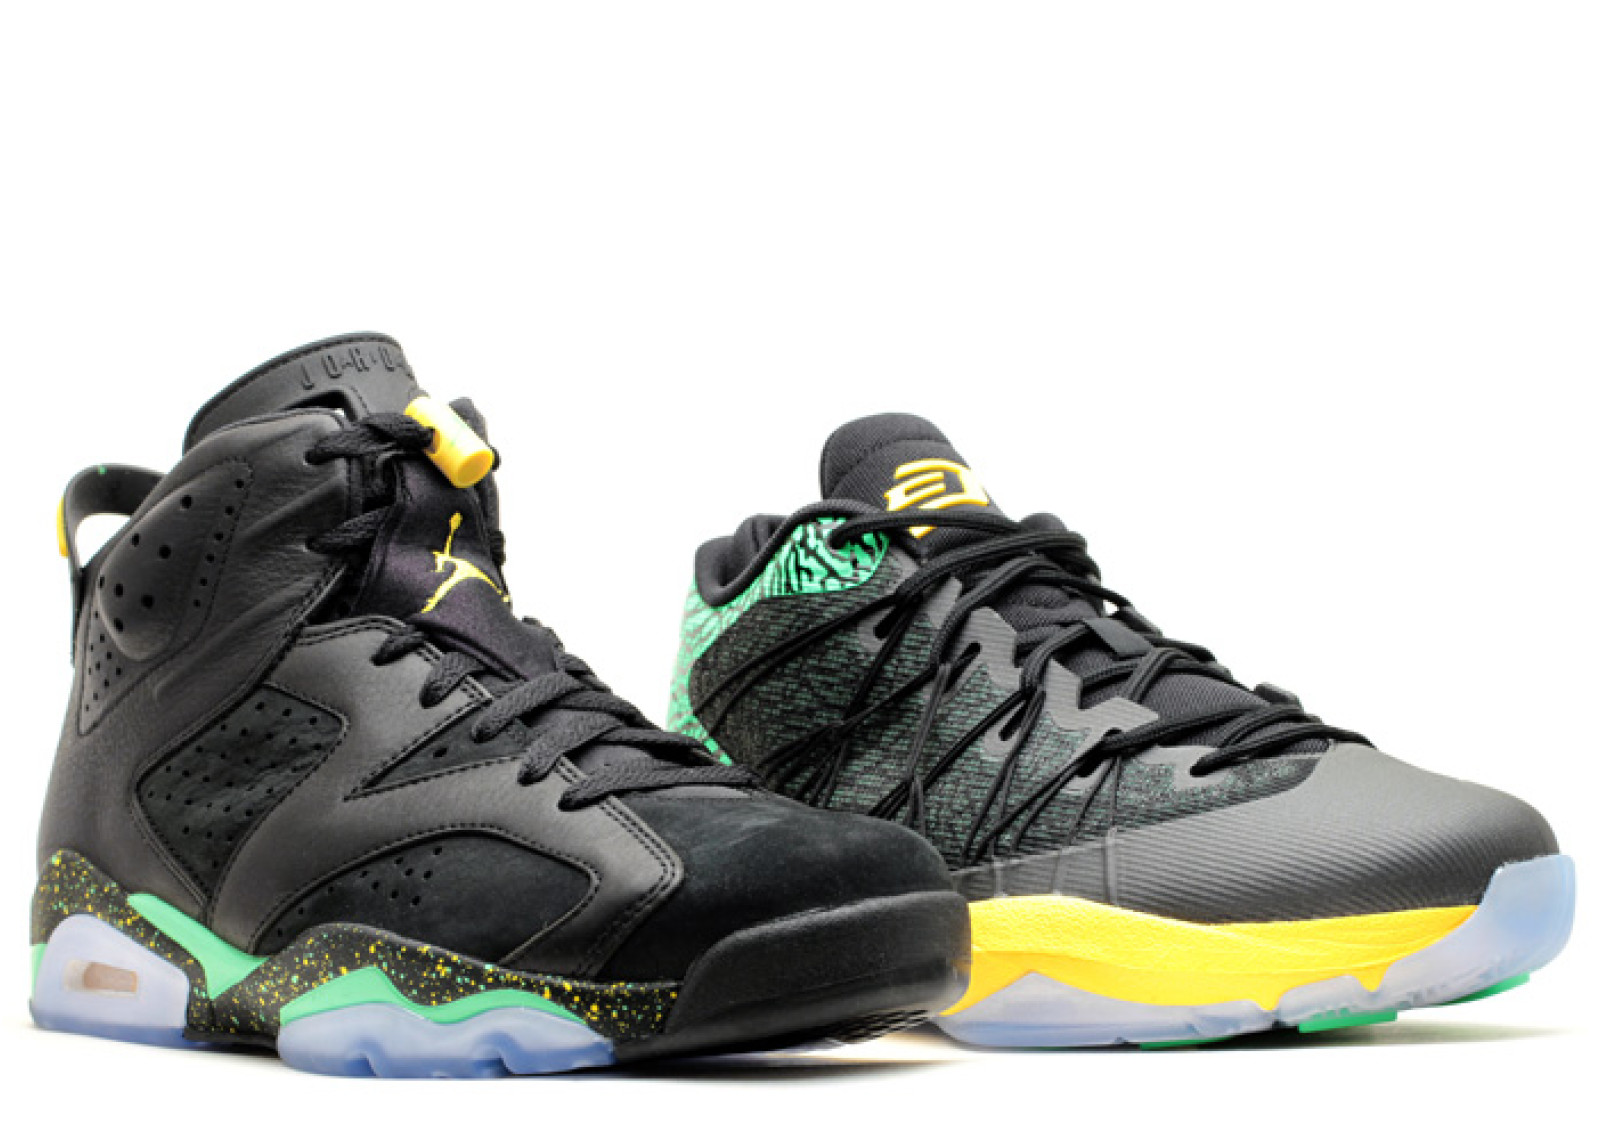 Nike Mens Jordan Brazil Pack  Black/Green/Yellow 688447-920